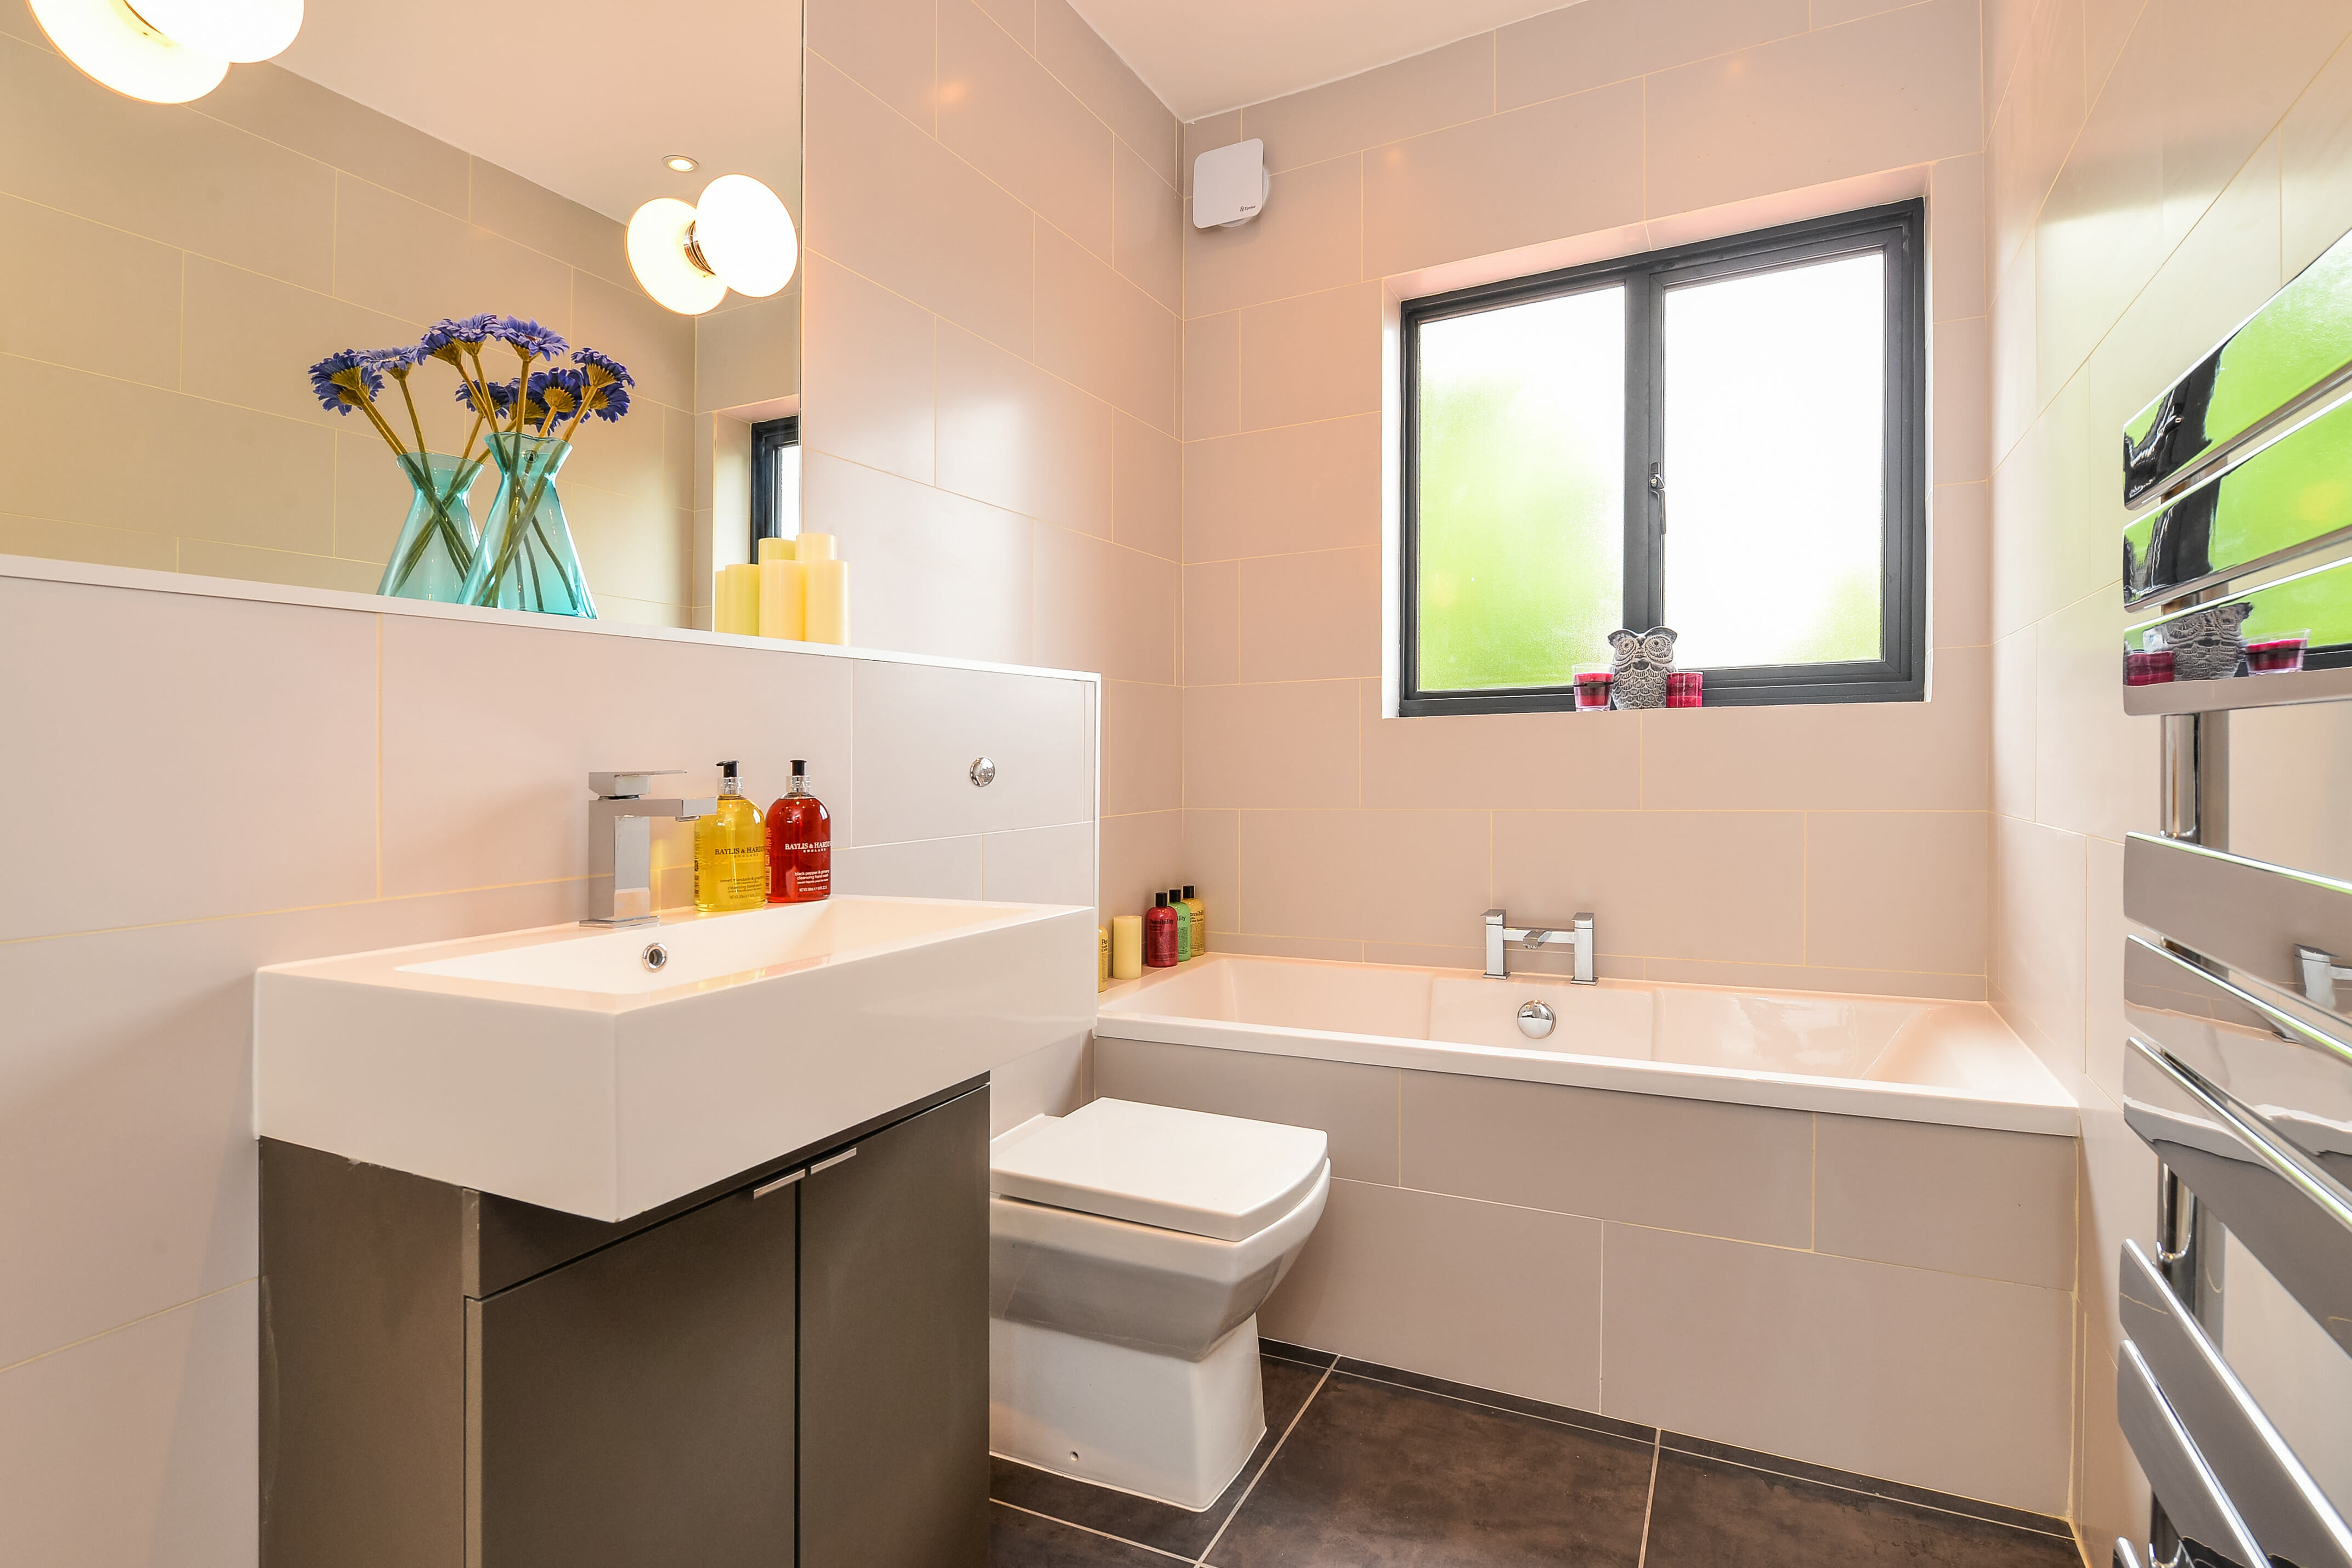 House Renovation in Ealing